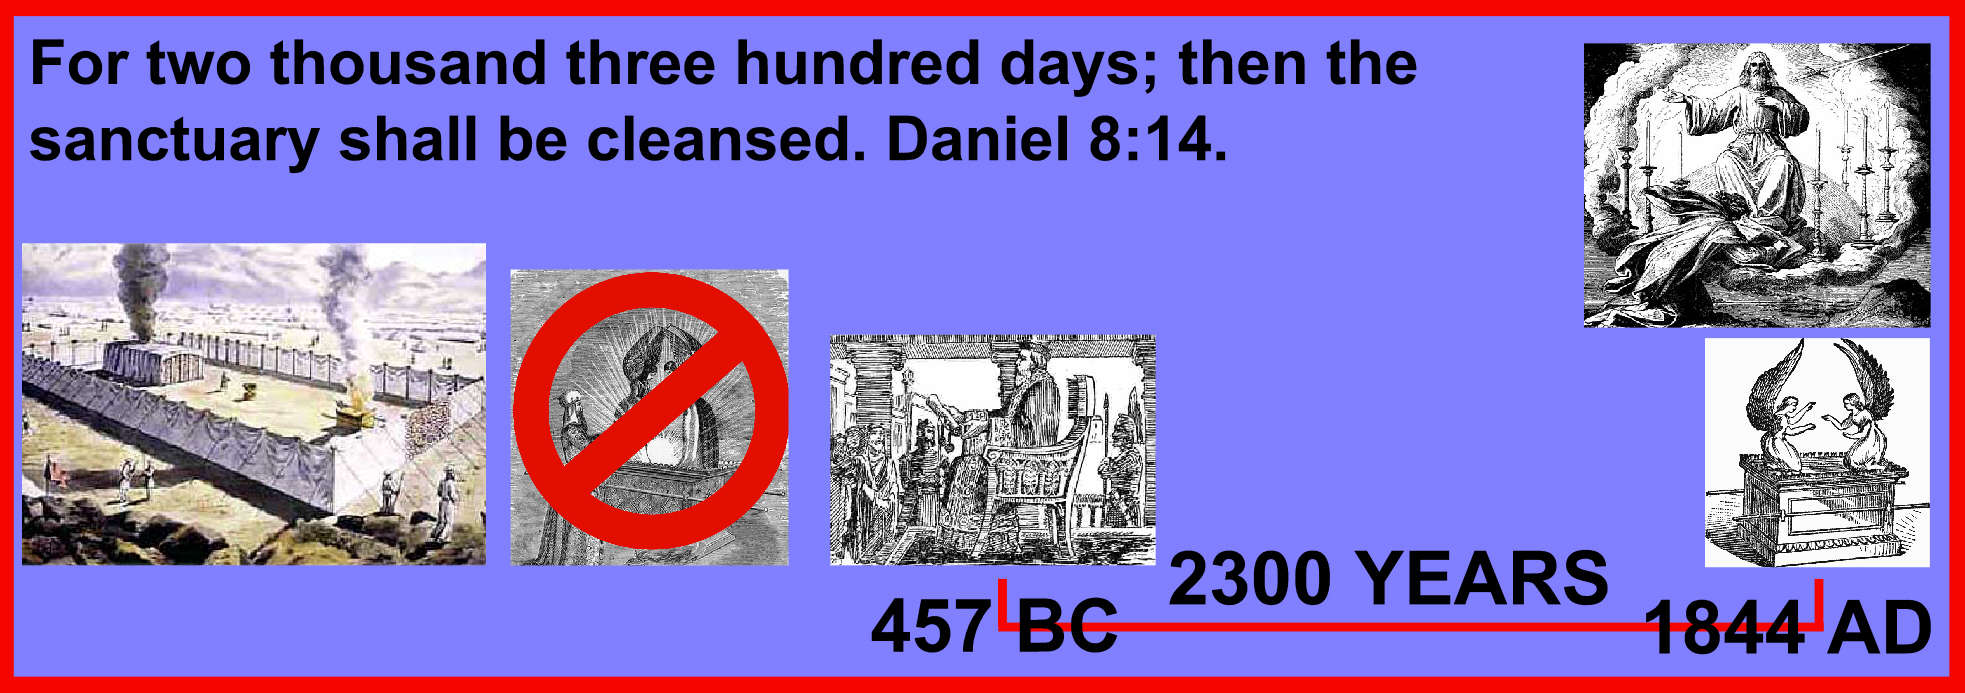 For two thousand three hundred days; then the sanctuary shall be cleansed. Daniel 8:14.